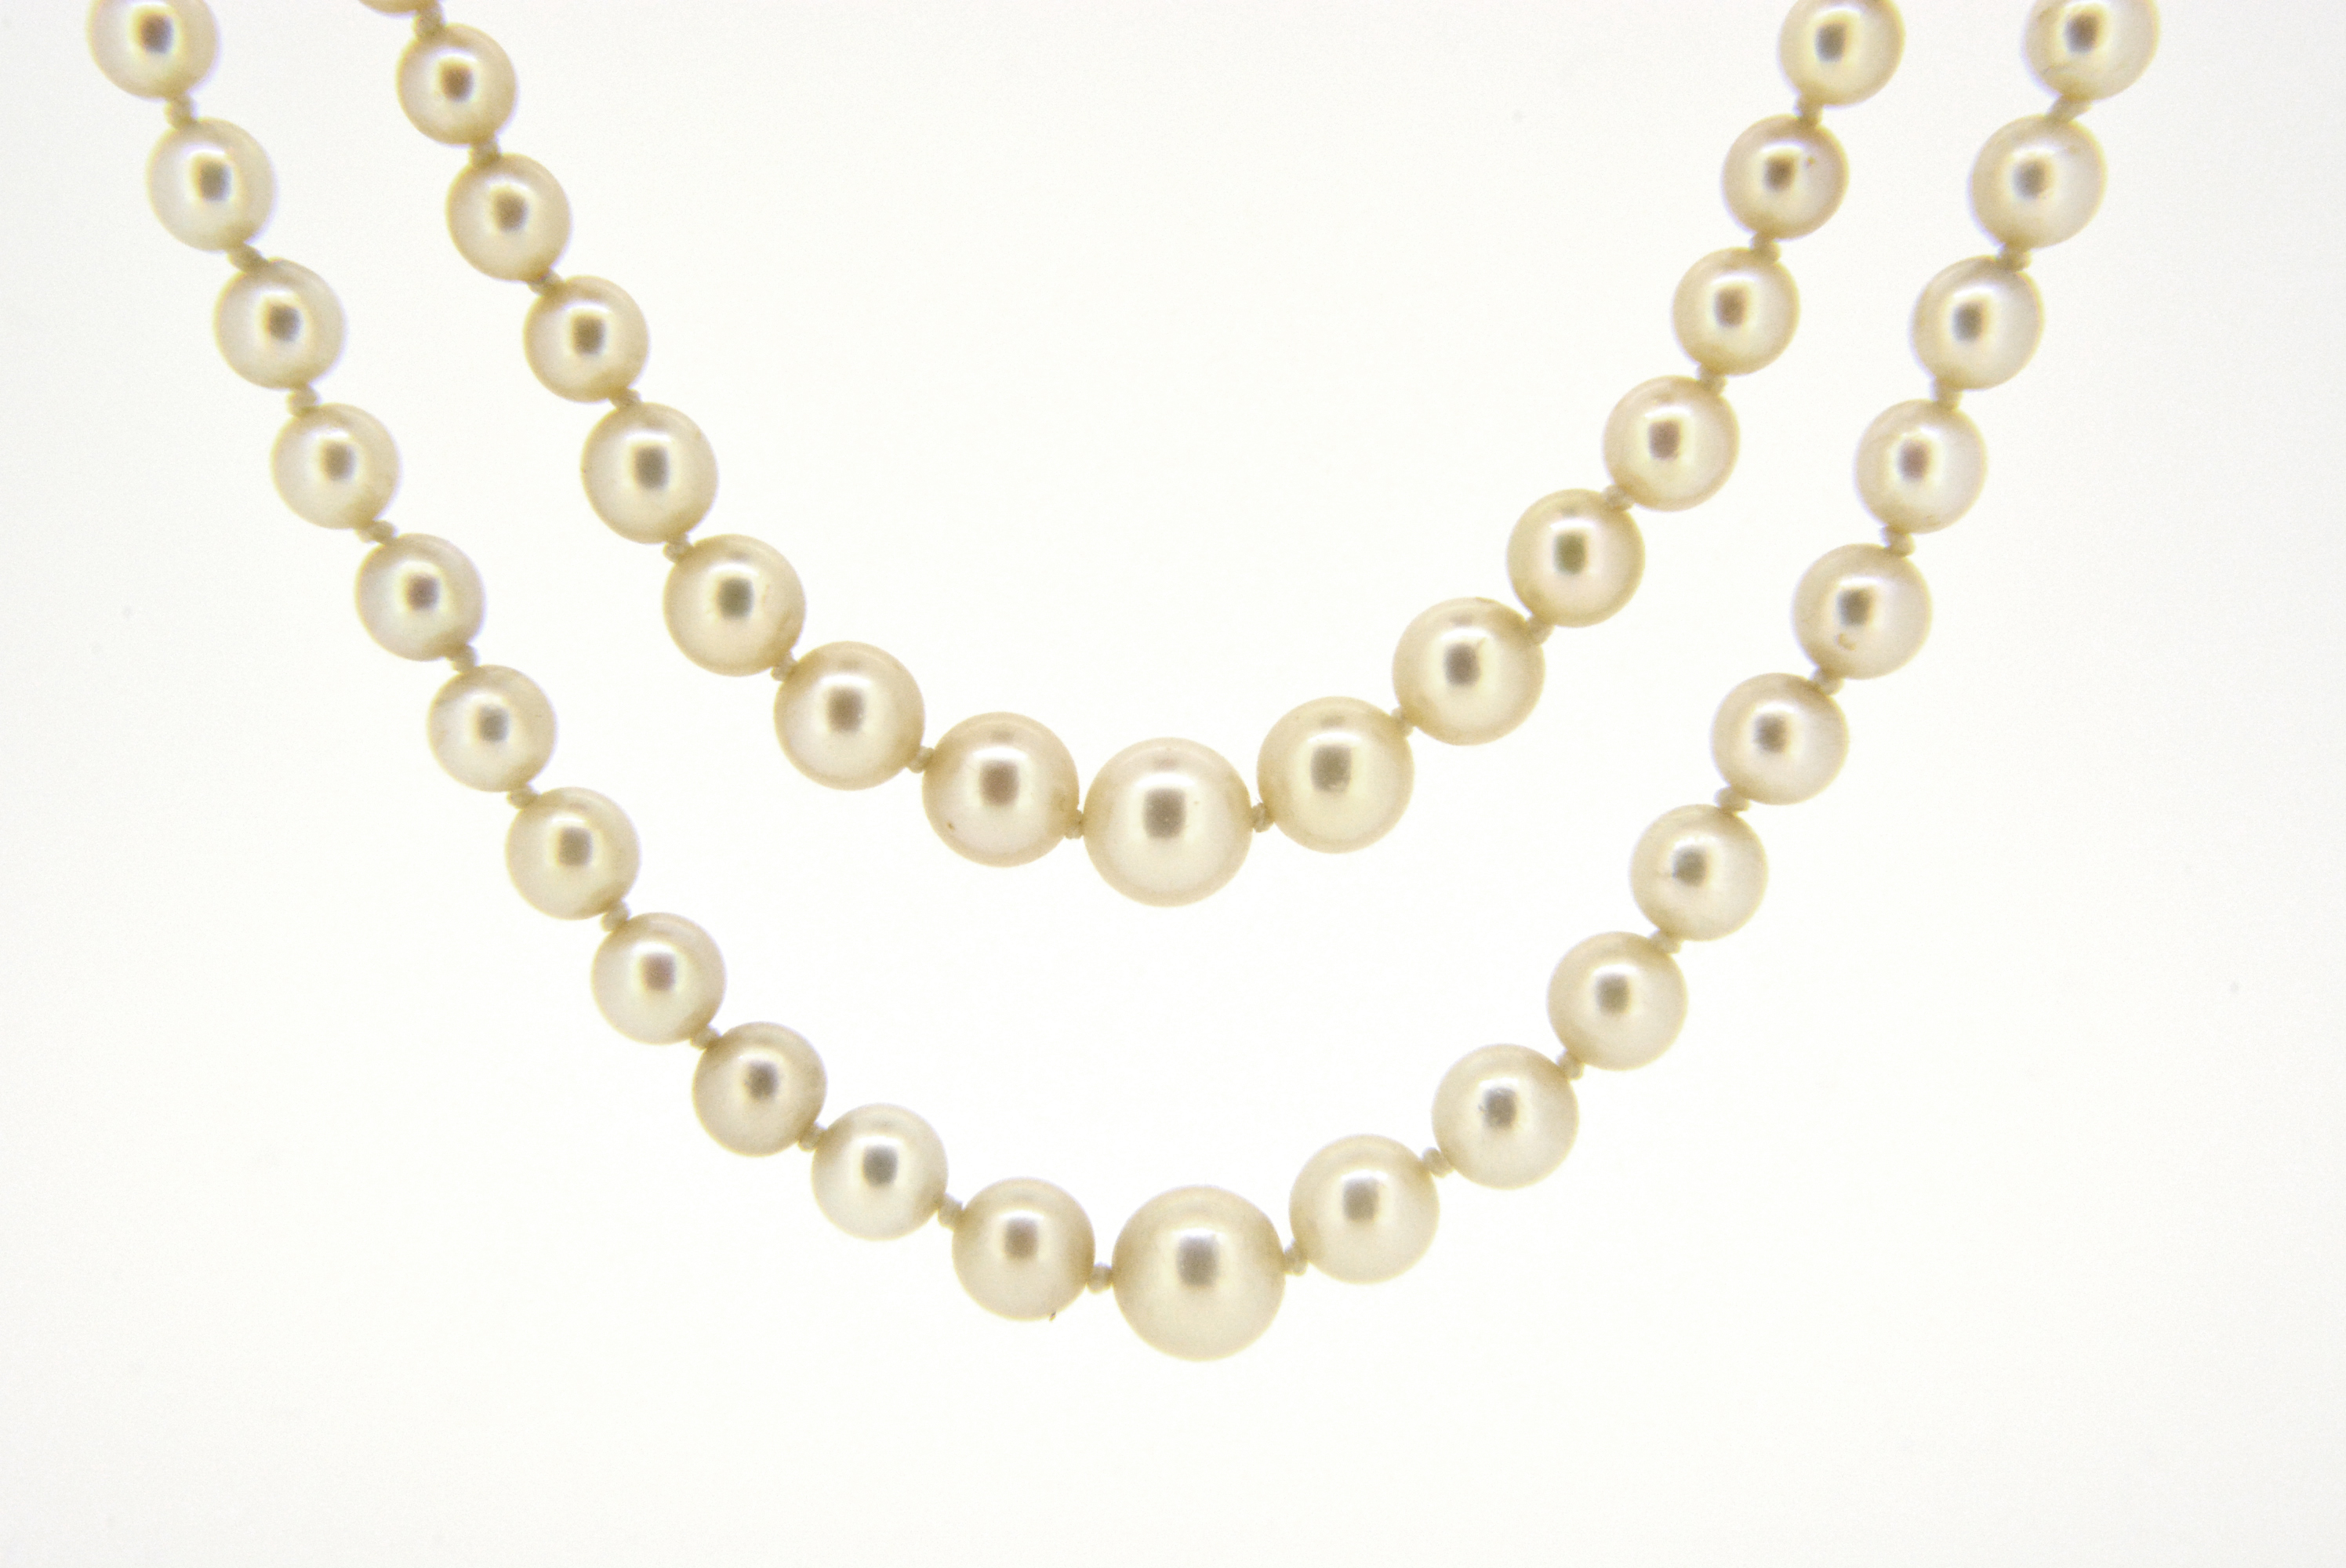 pearl asp mary s p station pearls gold berrys berry necklace oval like cultured pendant